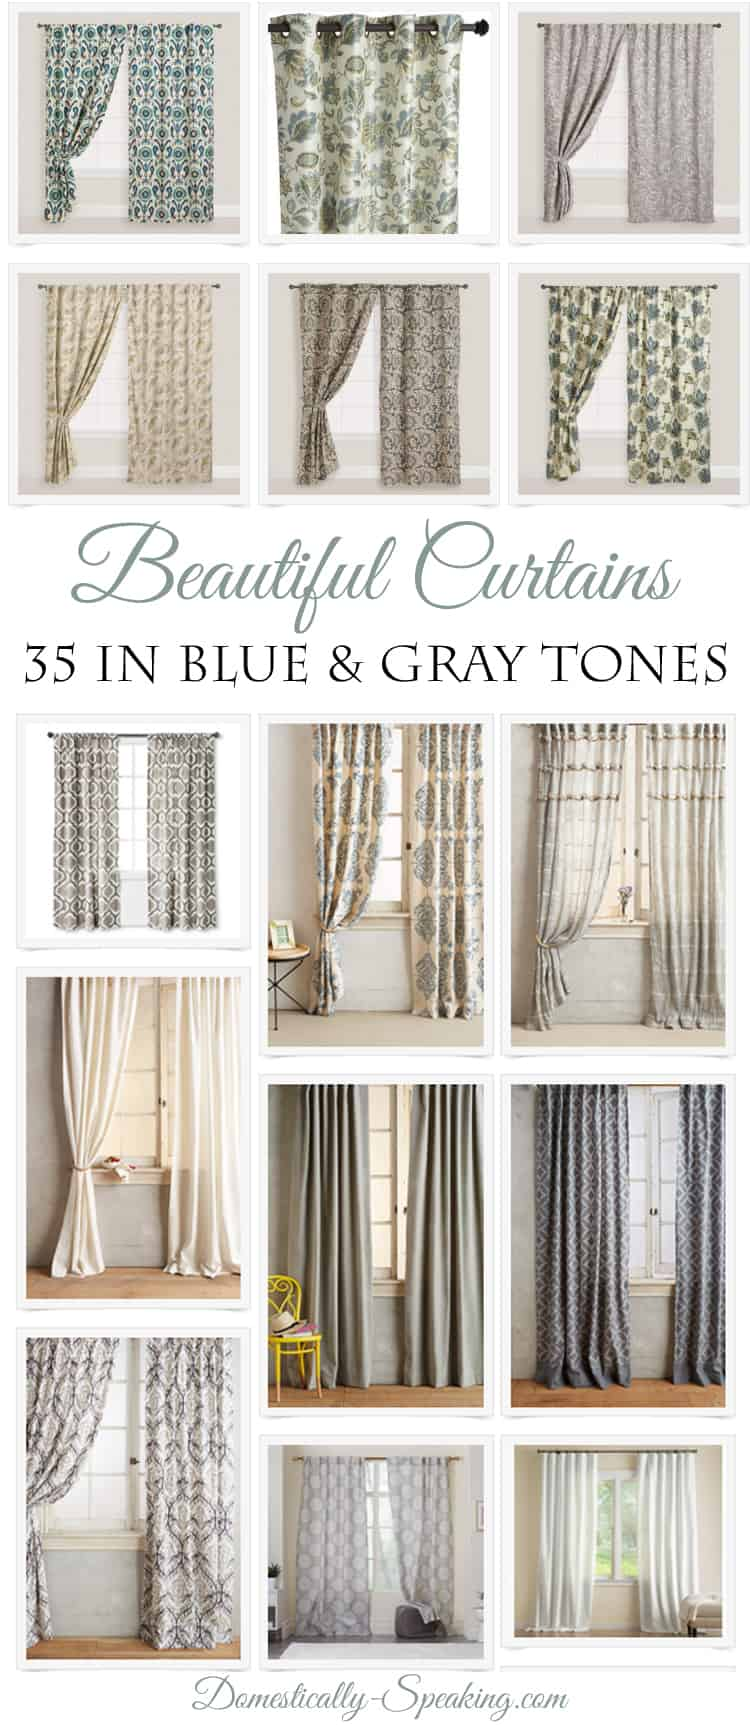 35 Beautiful Curtains - Domestically Speaking on Master Bedroom Curtains  id=85770